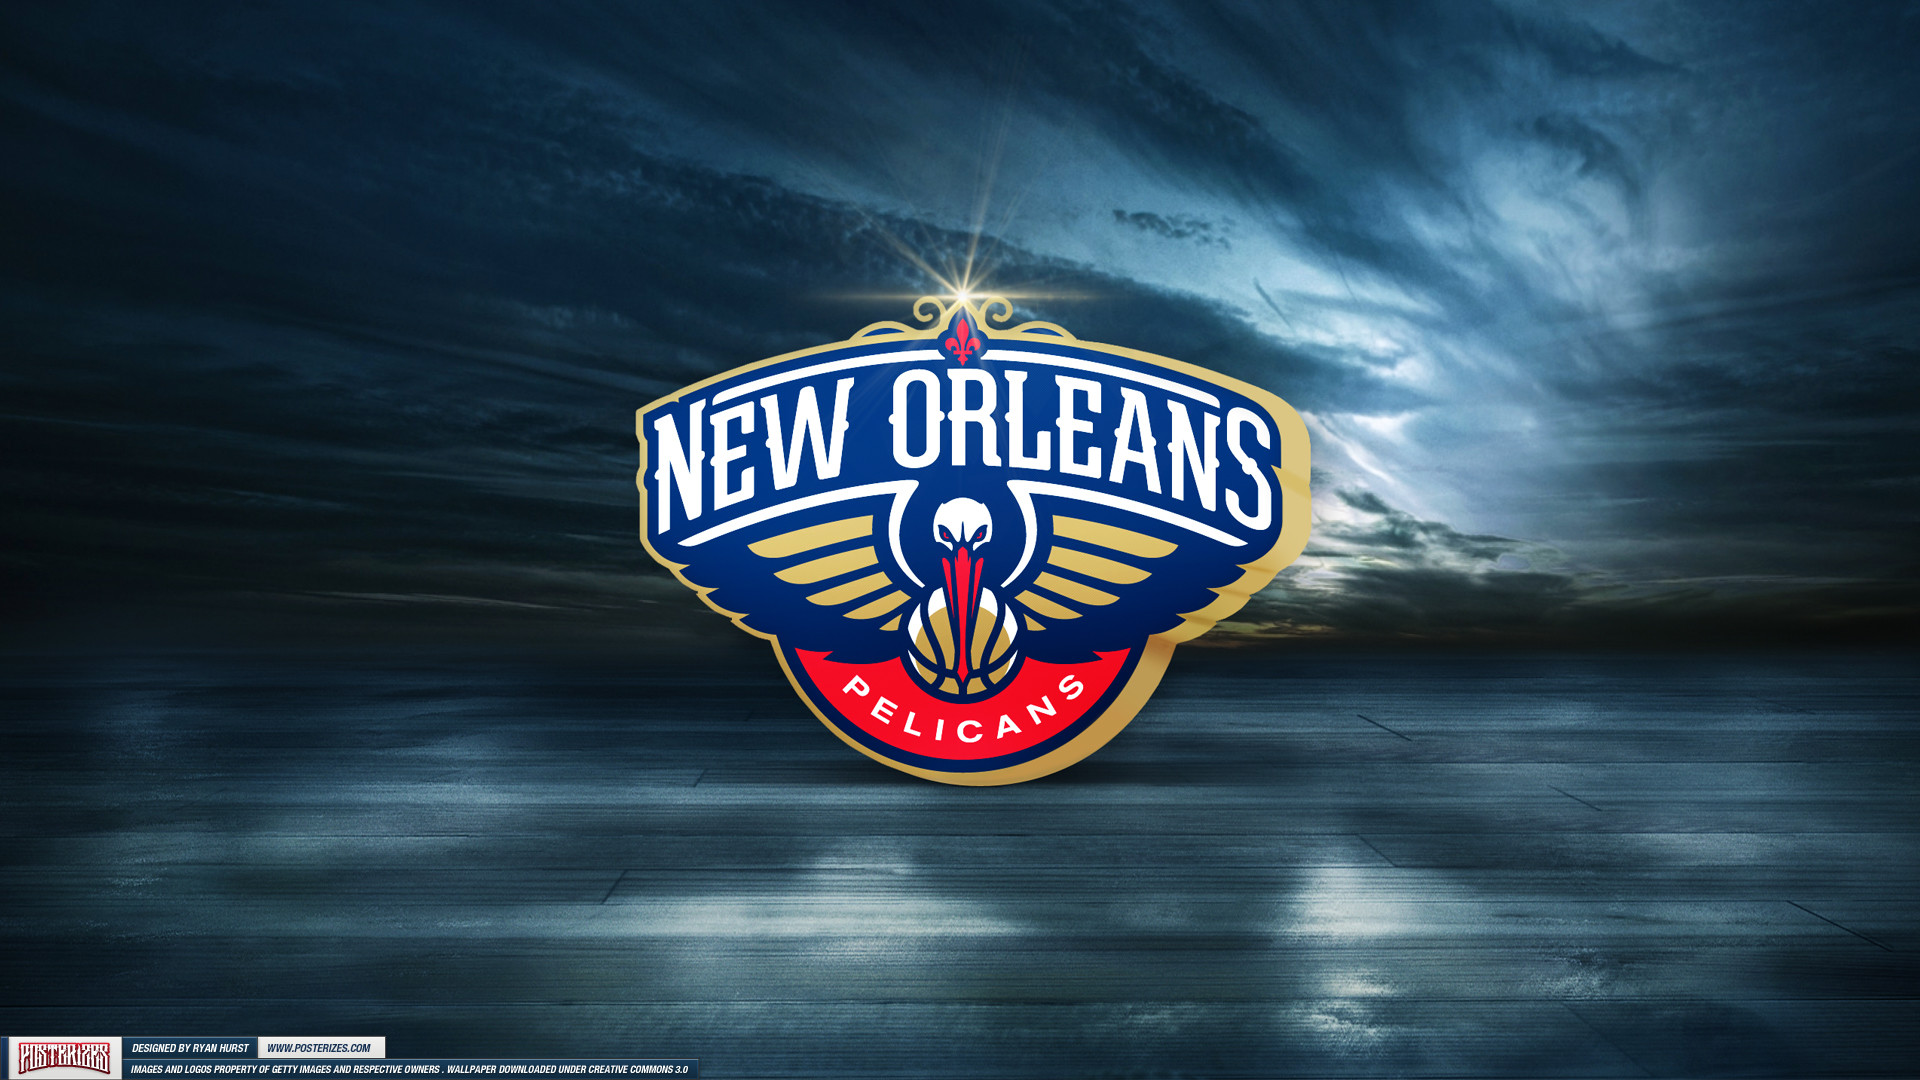 1920x1080 New Orleans Pelicans Wallpaper #1 | New Orleans Hornets/Pelicans |  Pinterest | NBA